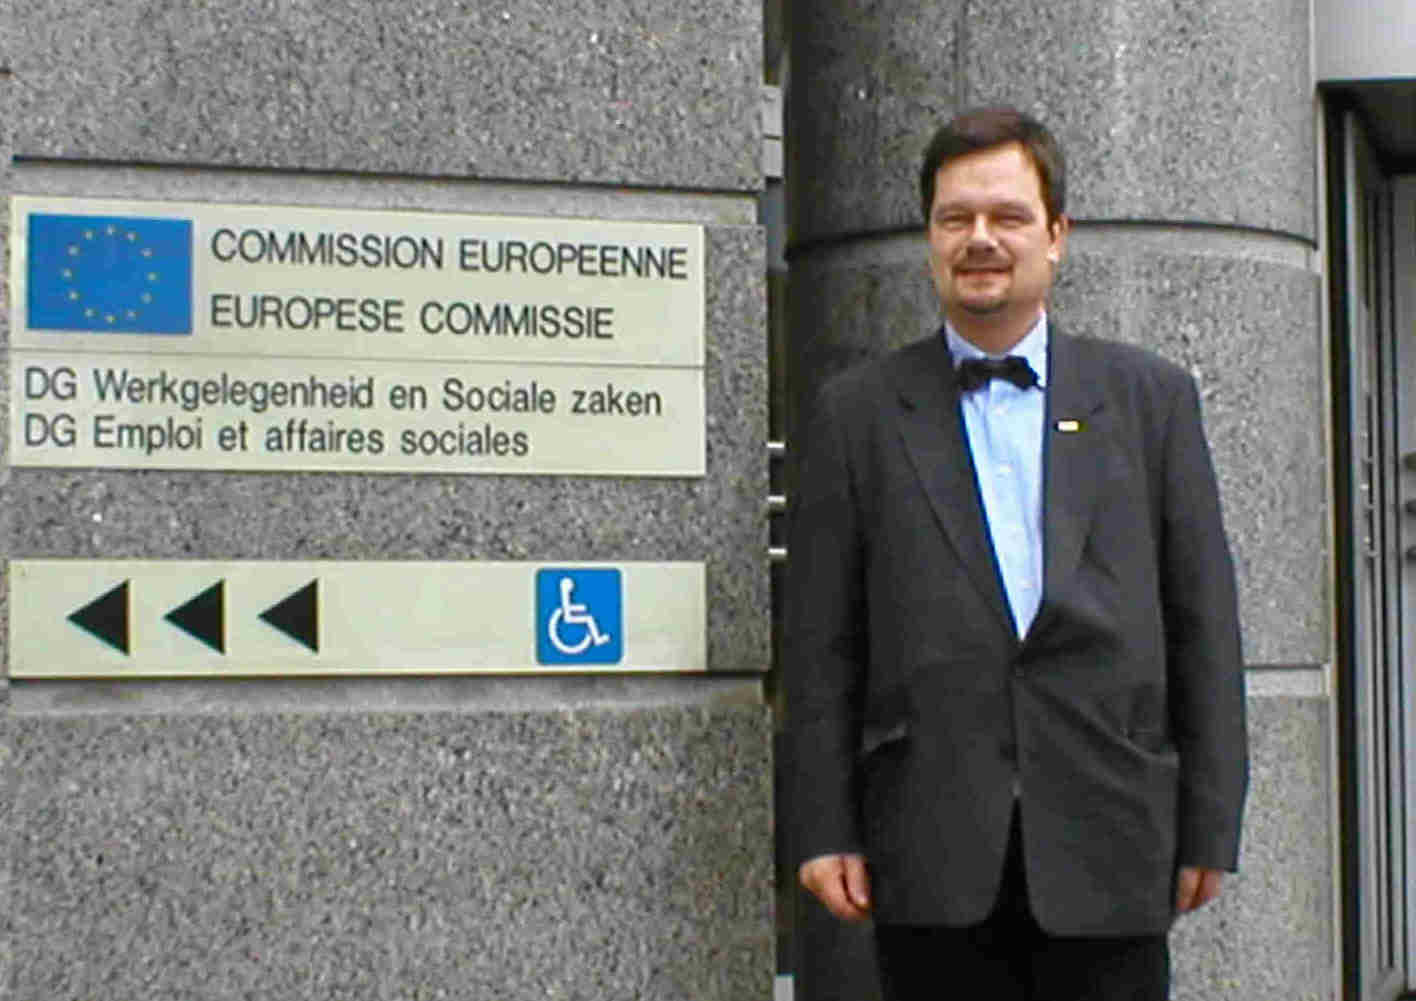 Dr Stefan Prystawik, Director of the European Anti-Discrimination Council, leaving the EU Commission Building for talks with the Vice President of the EU Parliament, Dr Sylvia-Yvonne Kaufmann